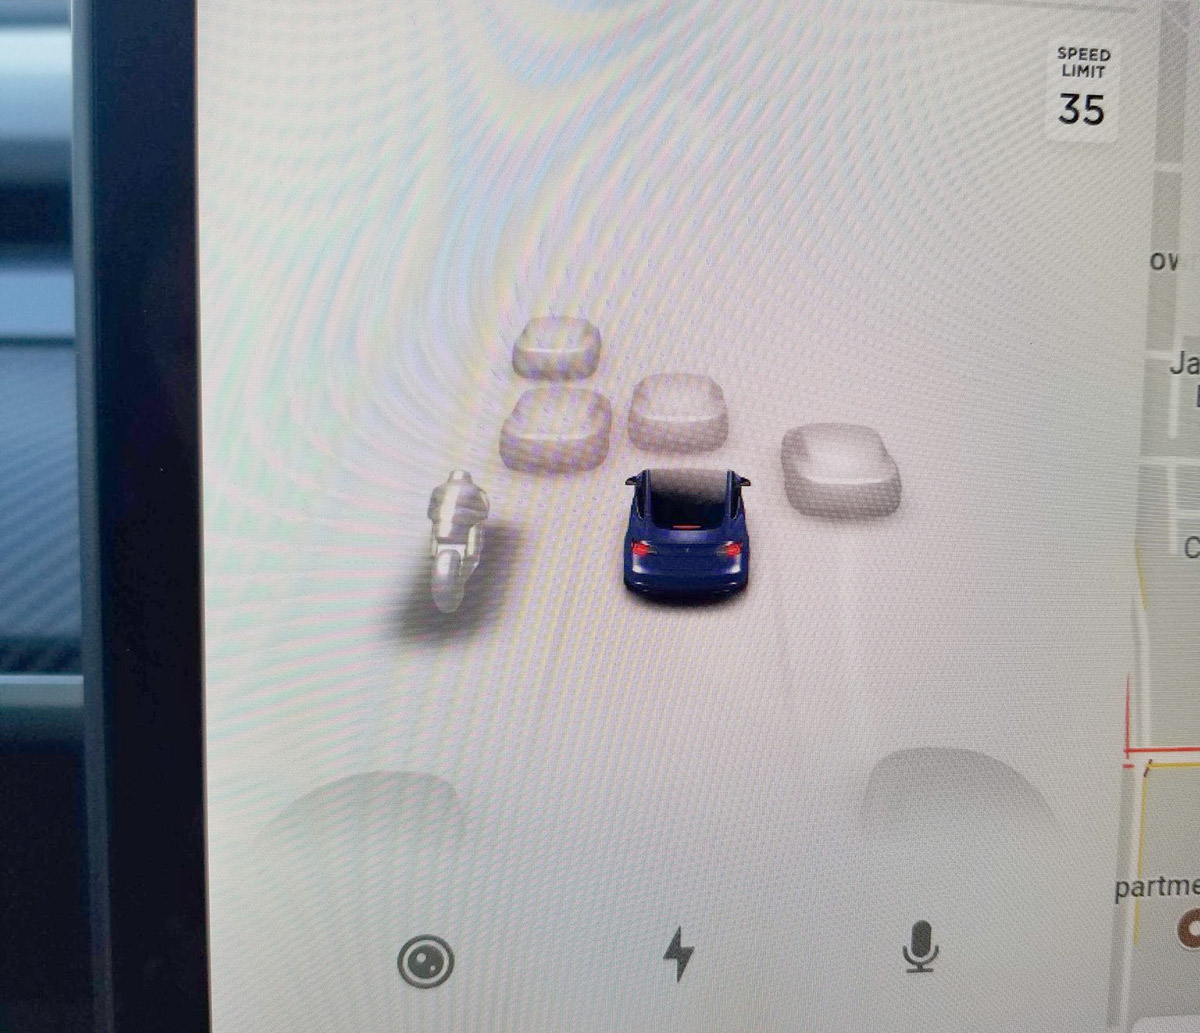 Tesla vehicles are now able to detect and display bikes/motorcycles, light duty trucks and heavy-duty trucks in addition to cars on the center screen